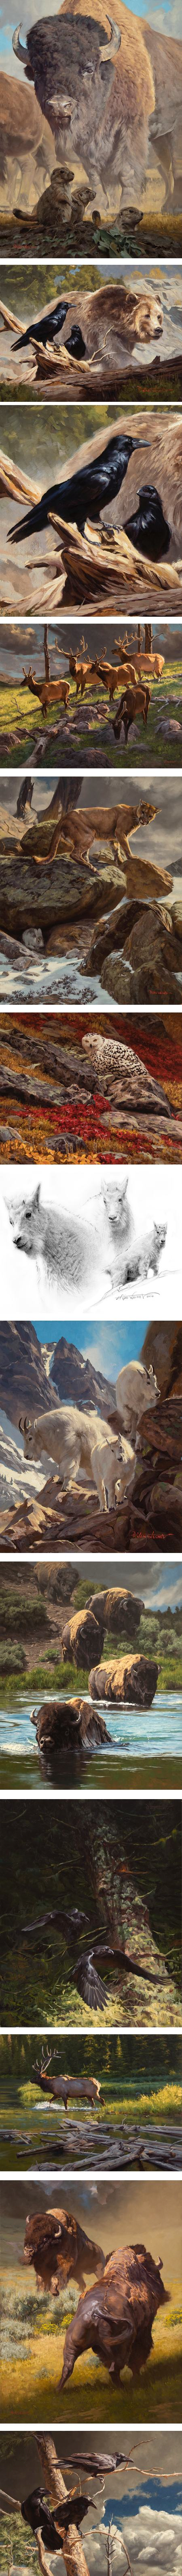 Dustin Van Wechel, wildlife art